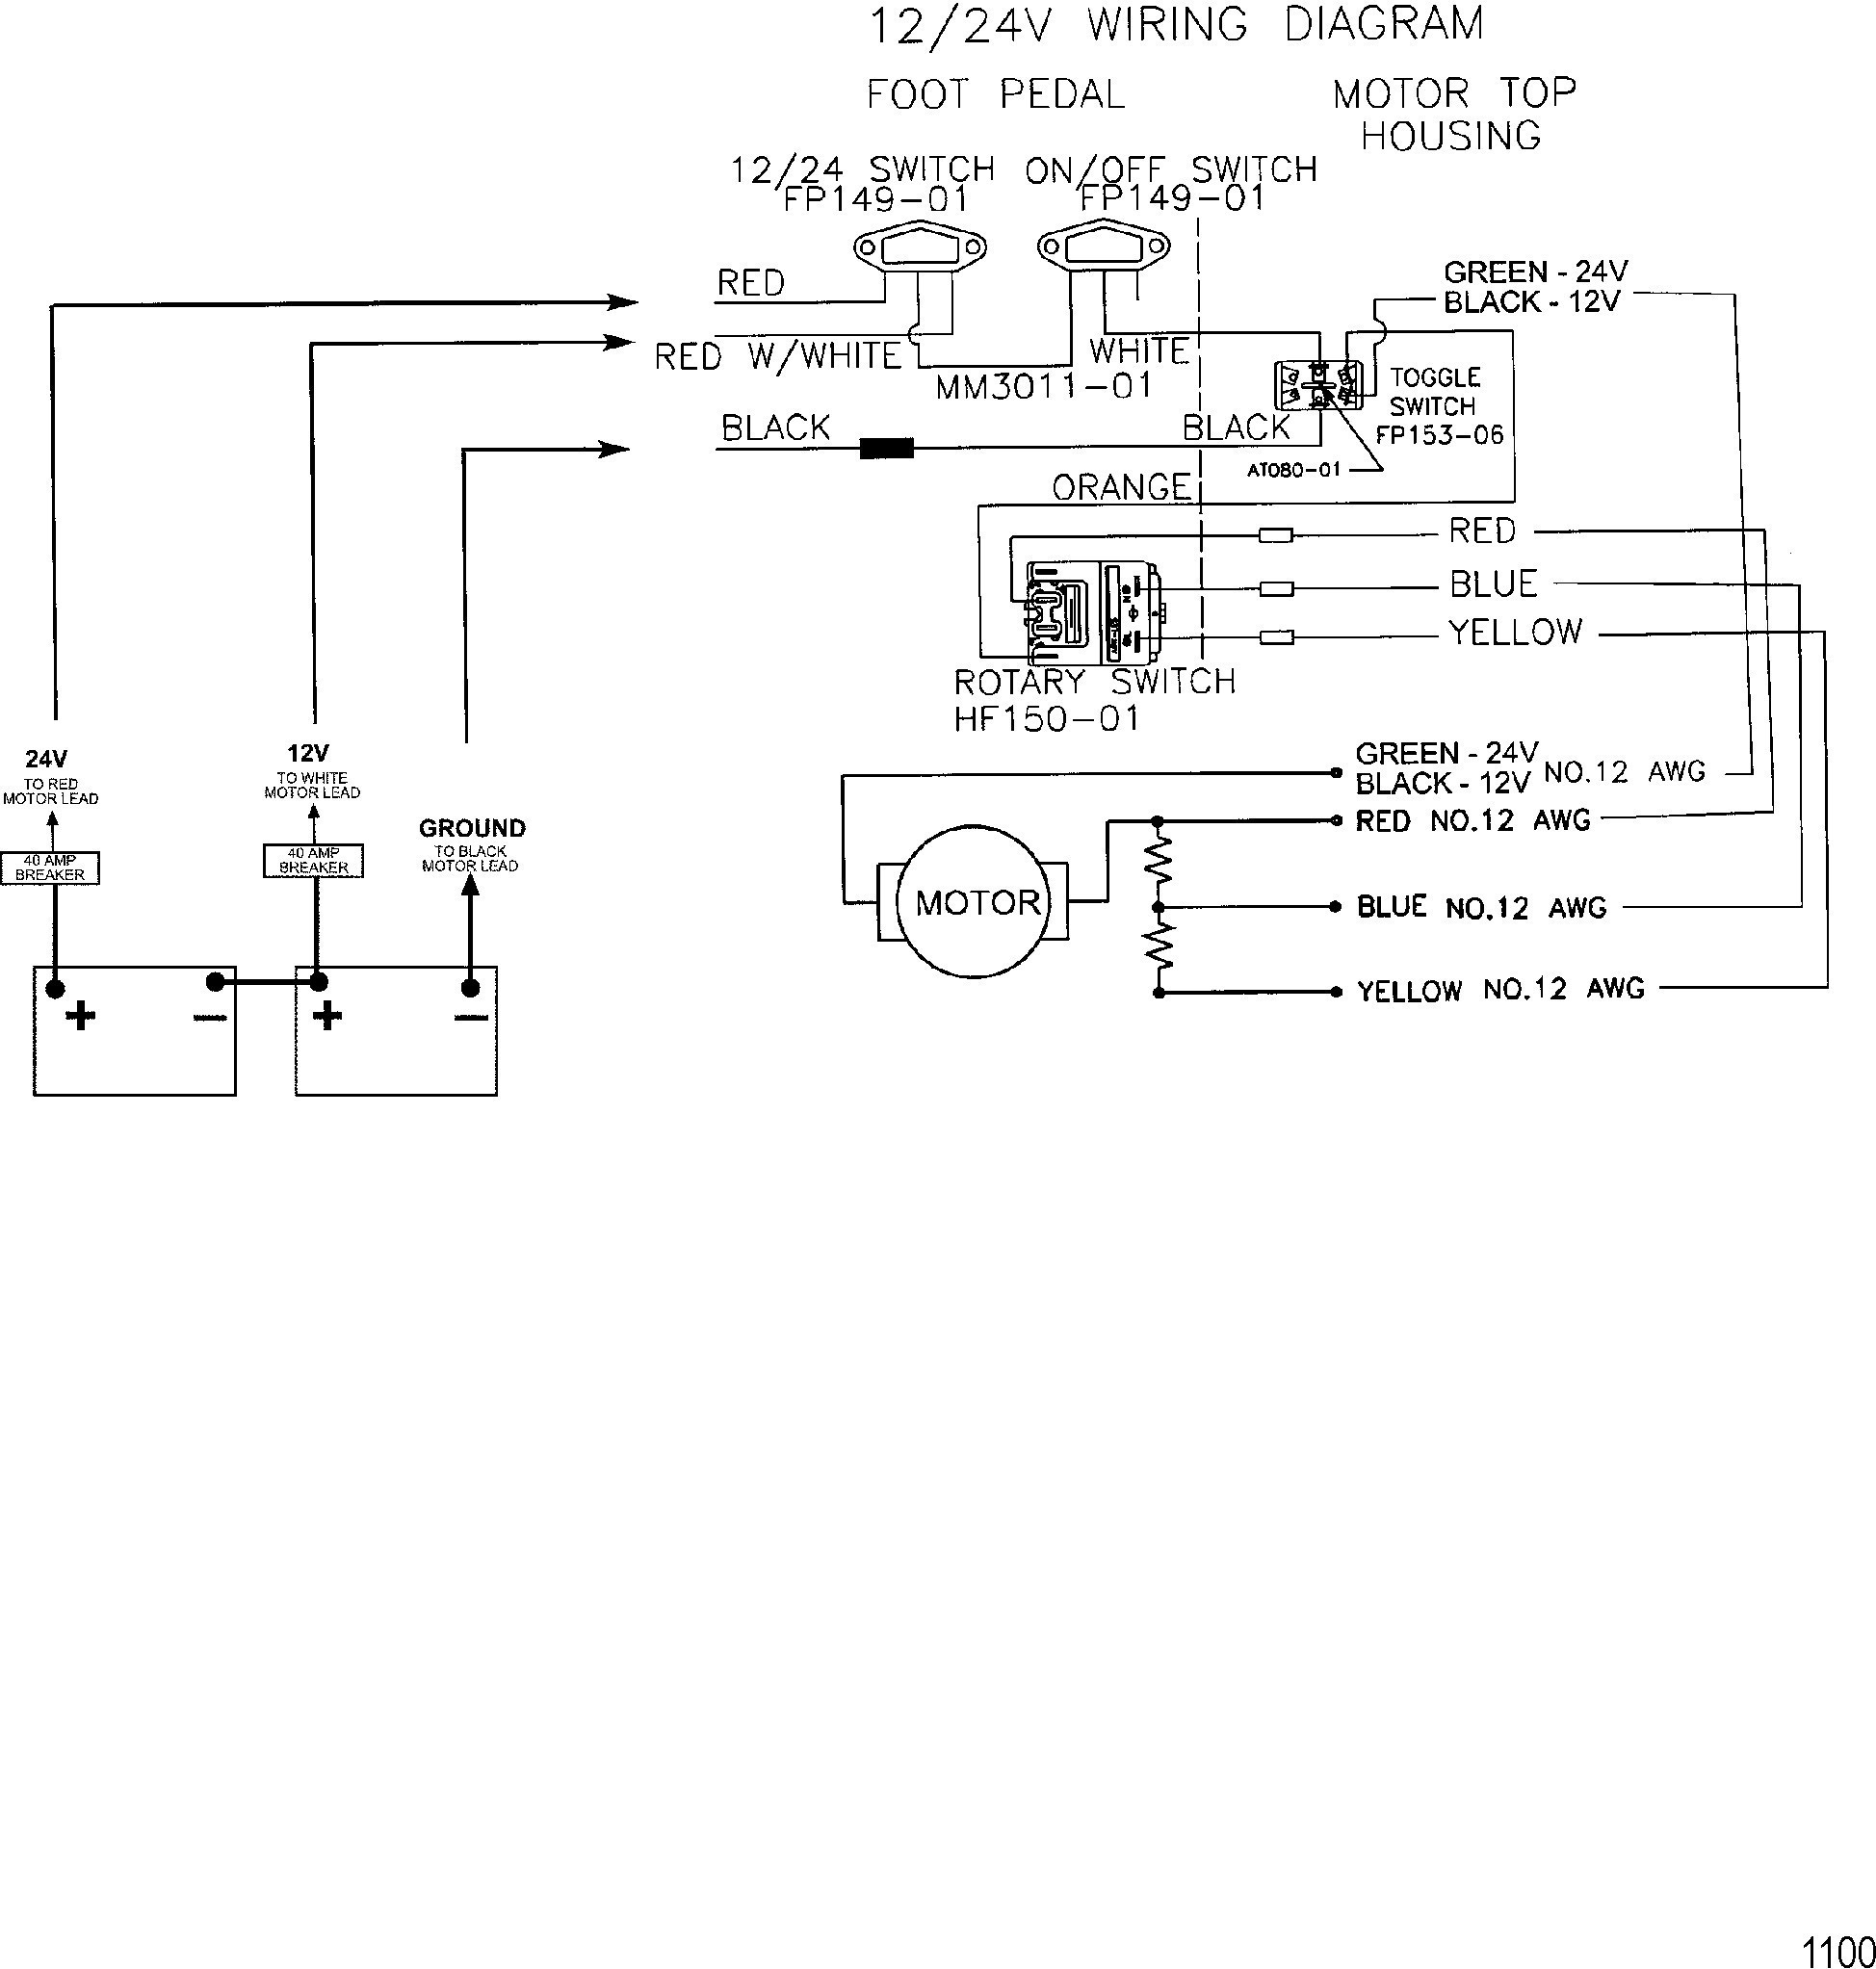 12 24 trolling motor wiring diagram free download wiring diagram36v trolling  motor wiring diagram wiring schematic